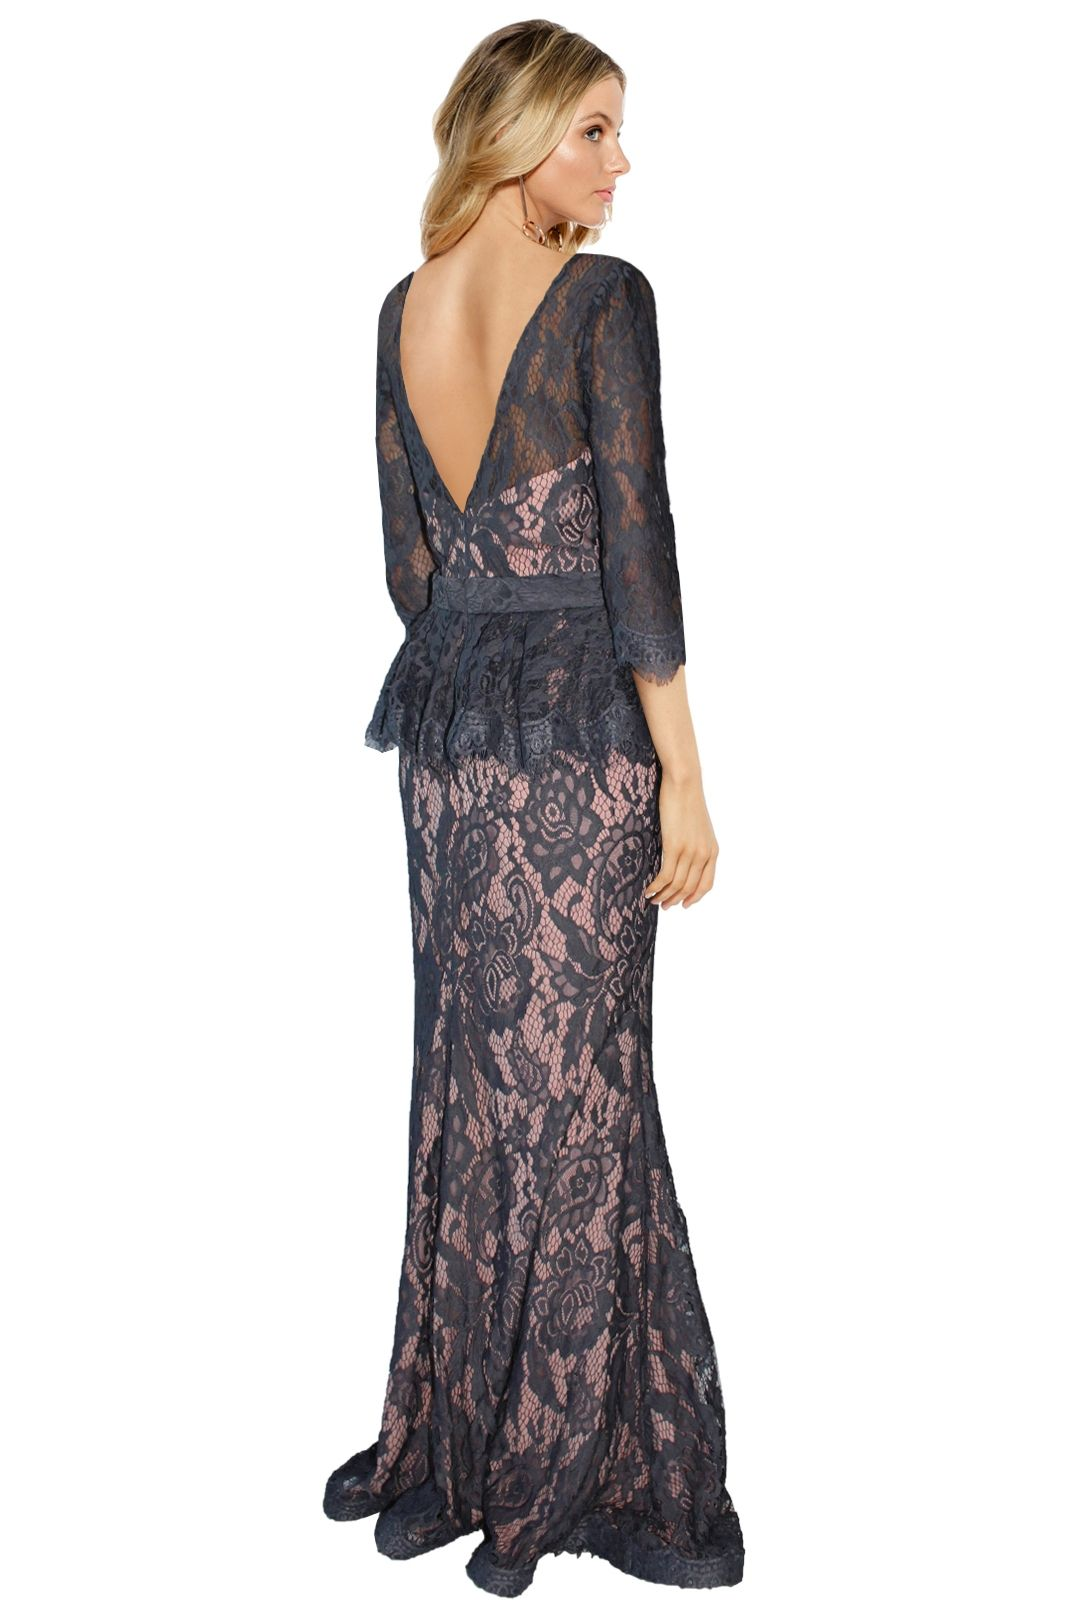 Jadore - Tessa Lace Gown - Grey Lace - Back